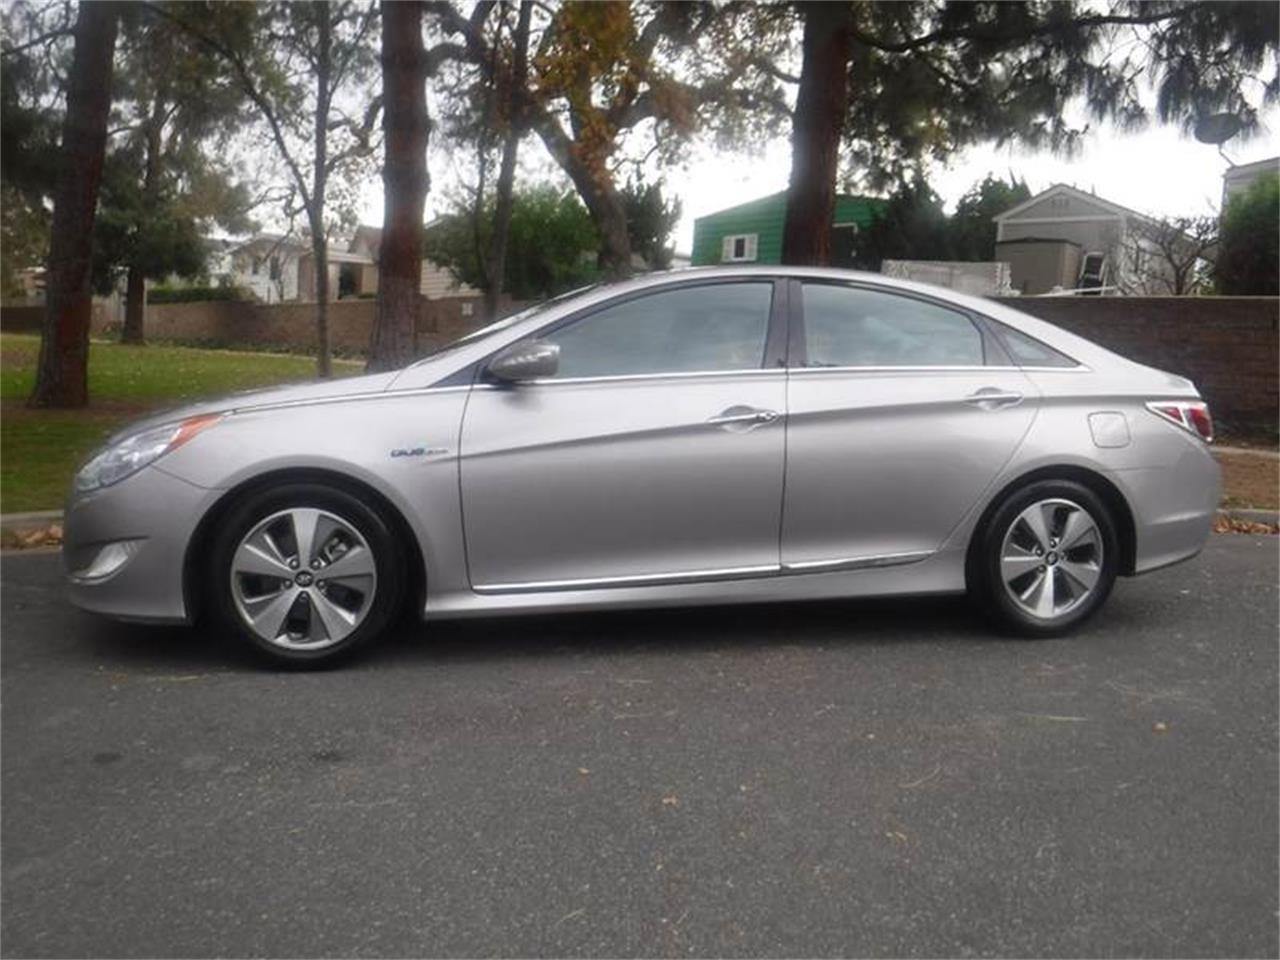 Large Picture of '11 Hyundai Sonata located in California - $9,995.00 Offered by Allen Motors, Inc. - MOBC